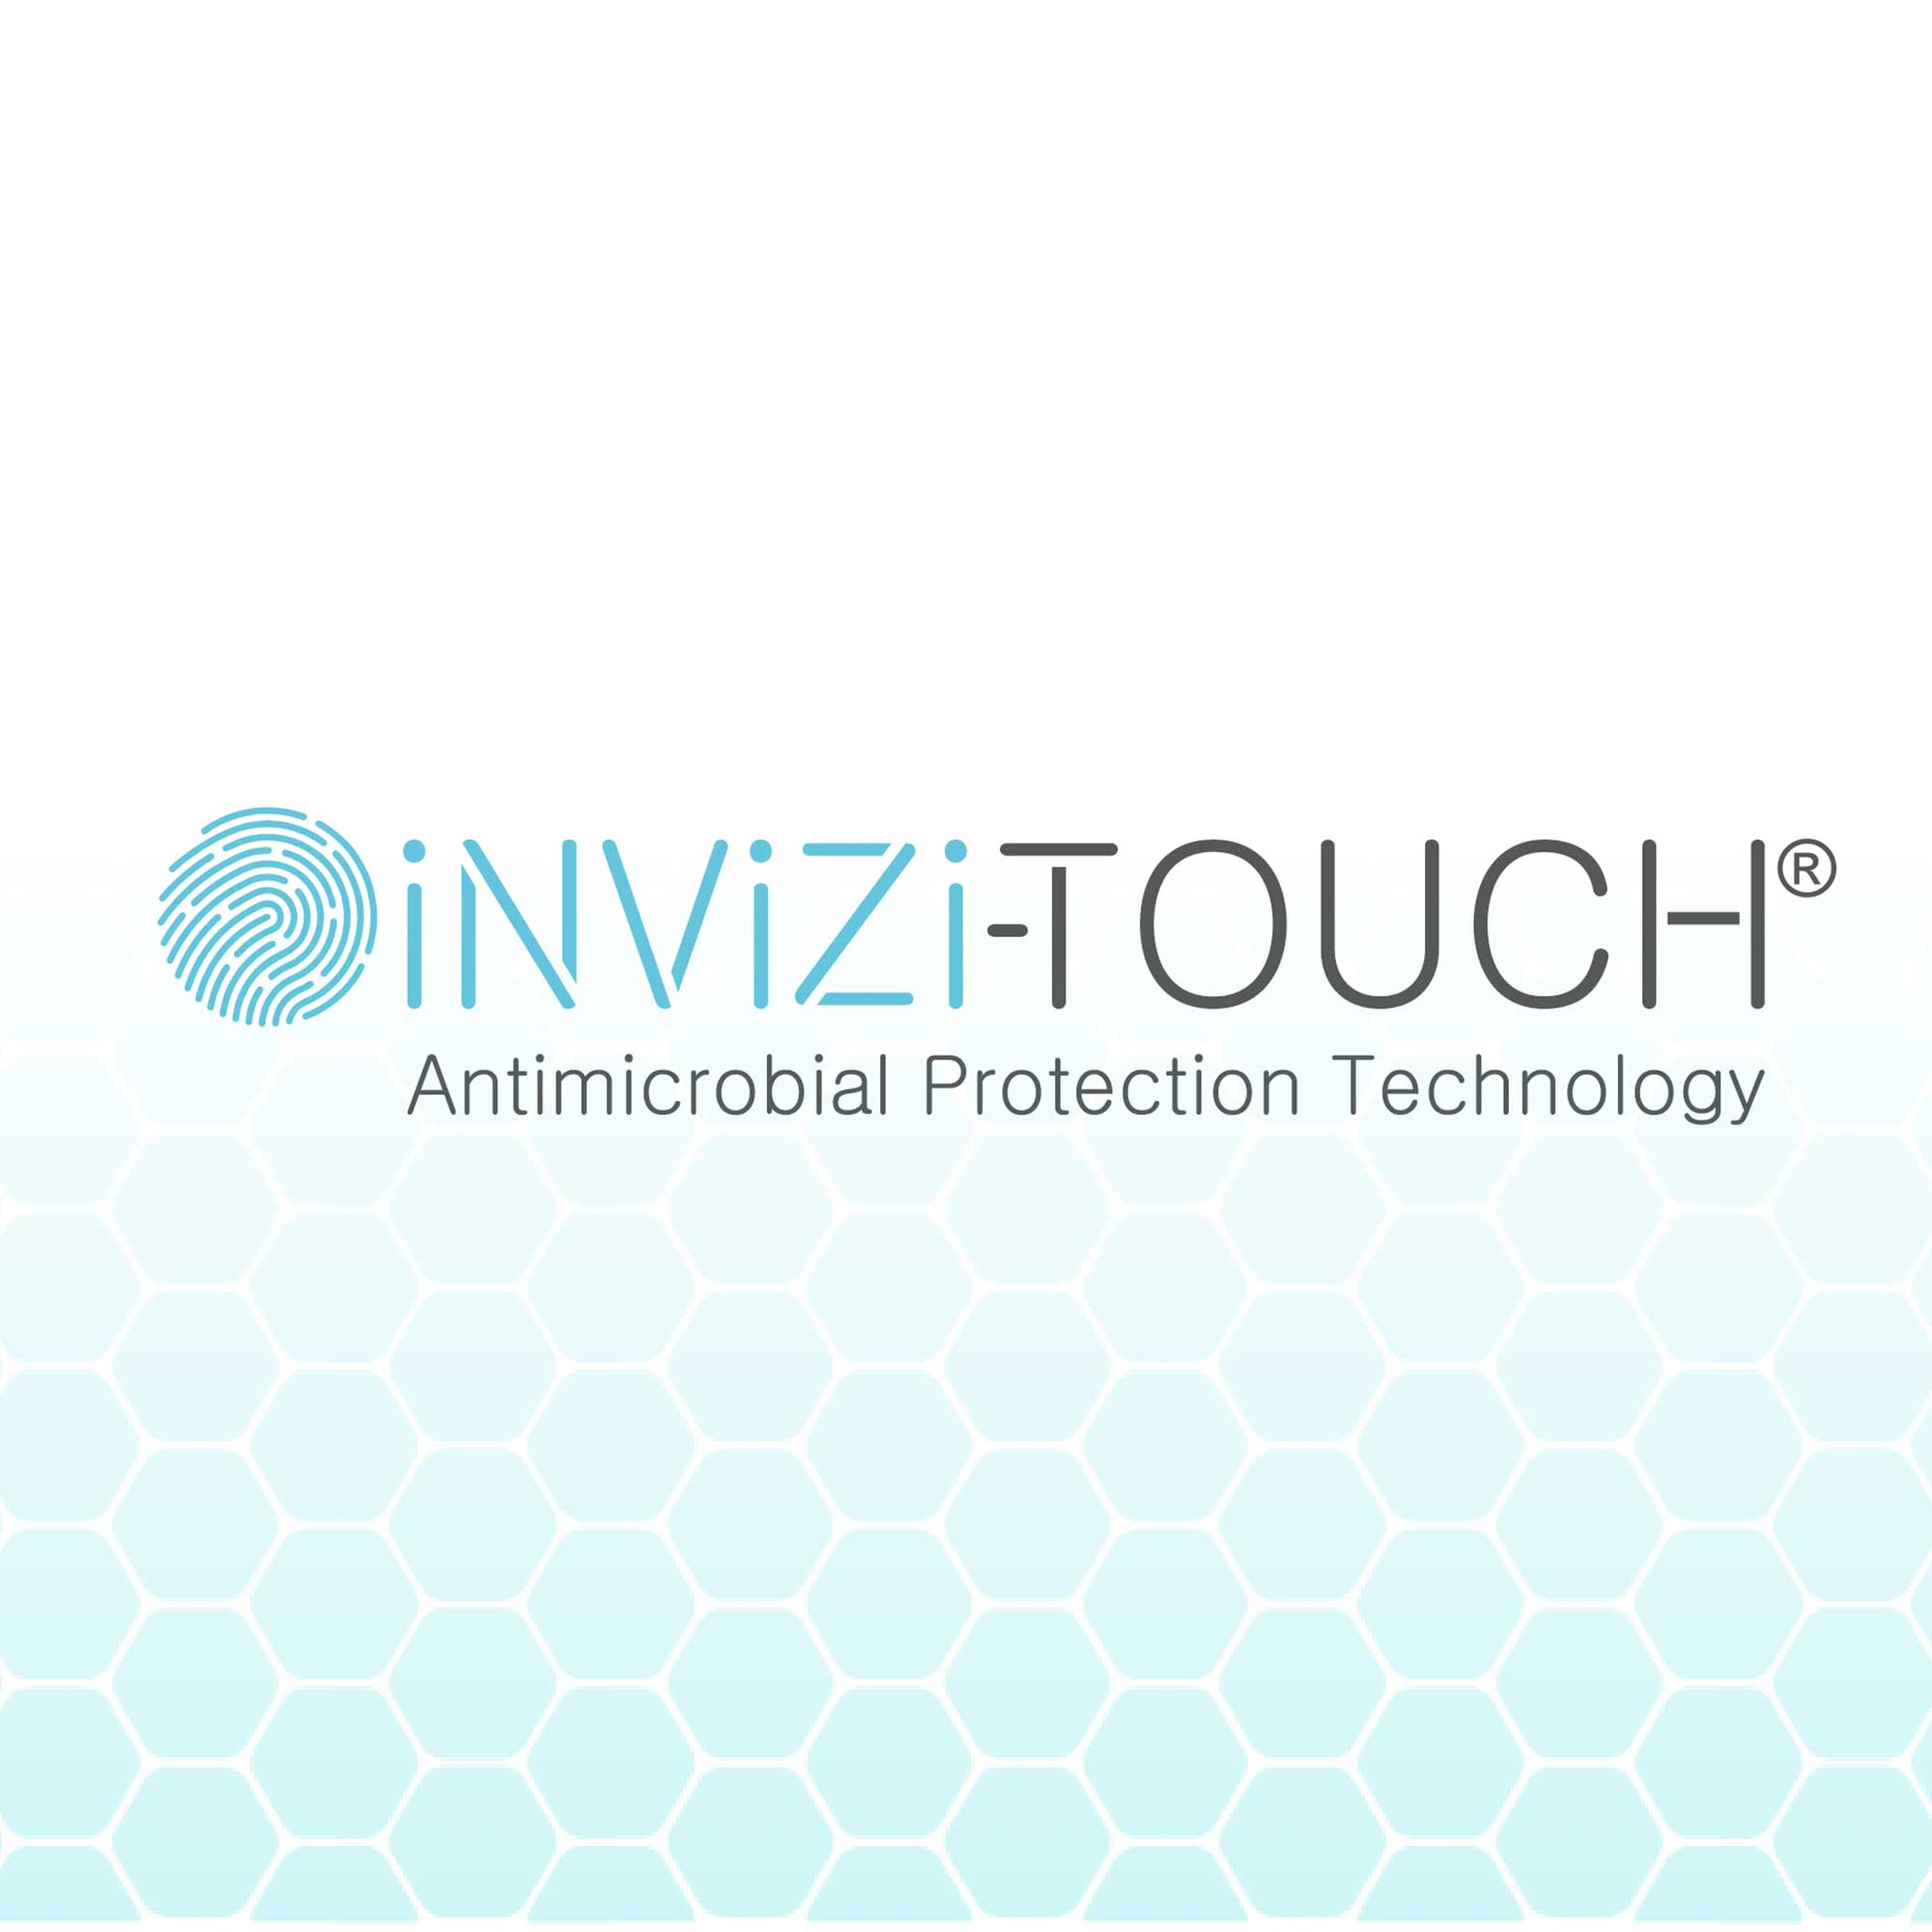 Invizi-Touch®